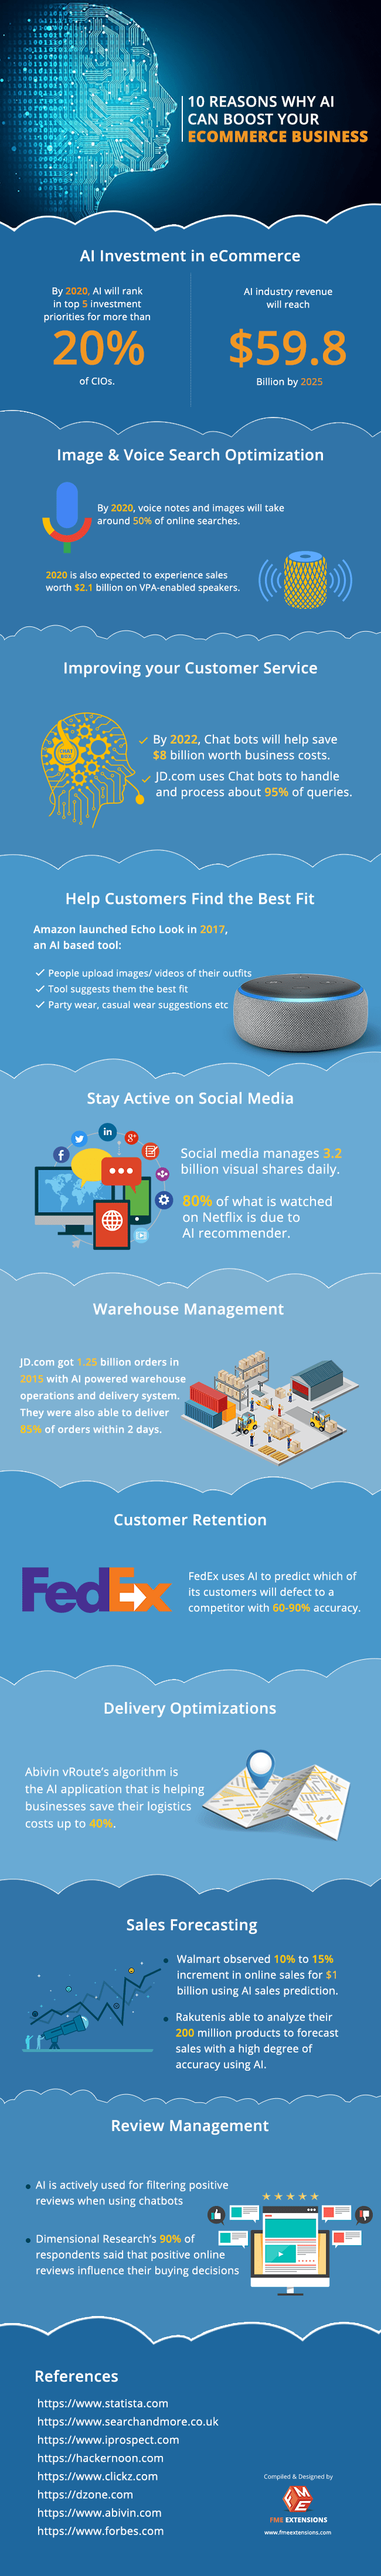 10-reasons-why-ai-can-boost-your-ecommerce-business-infographic